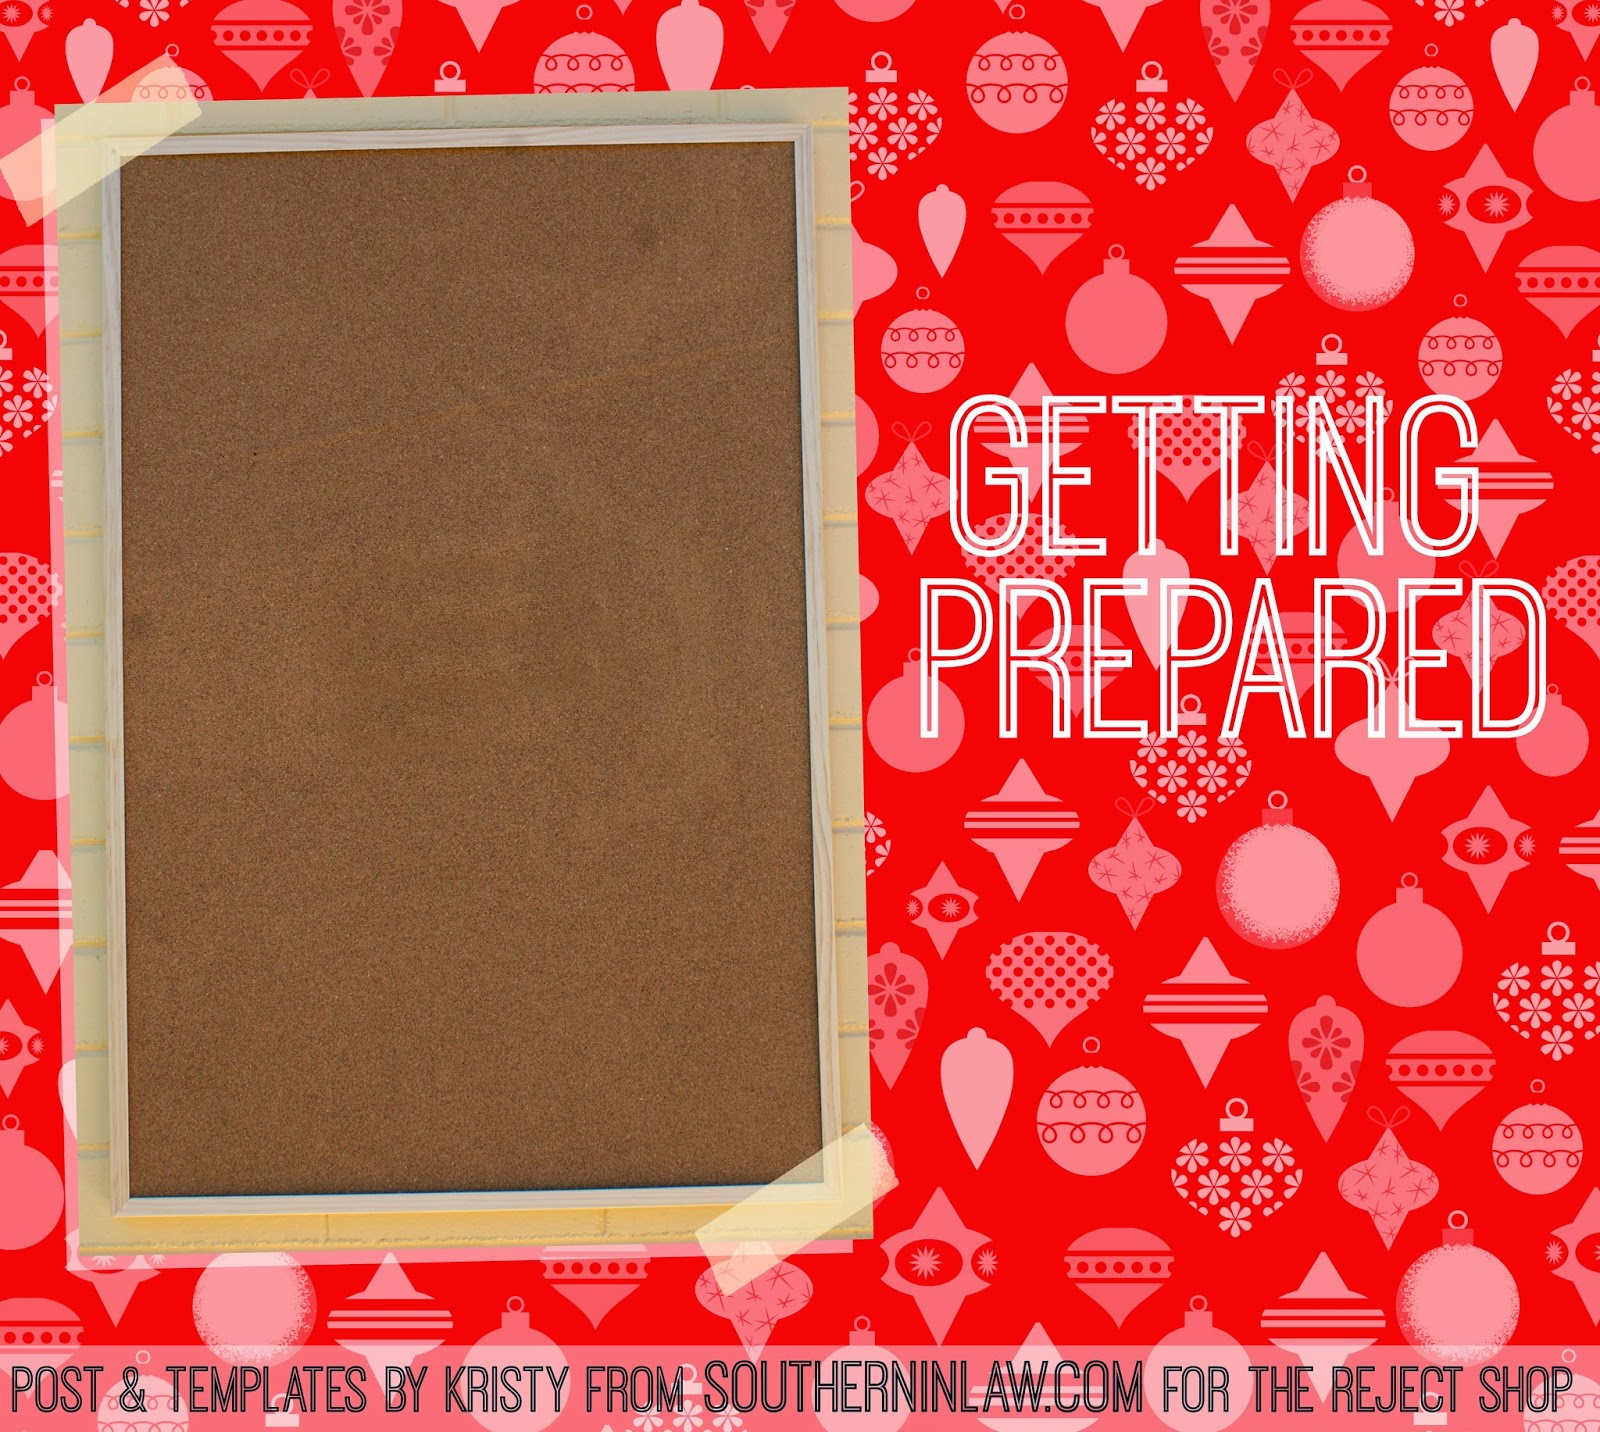 How to make a DIY Advent Calendar from a Cork Board